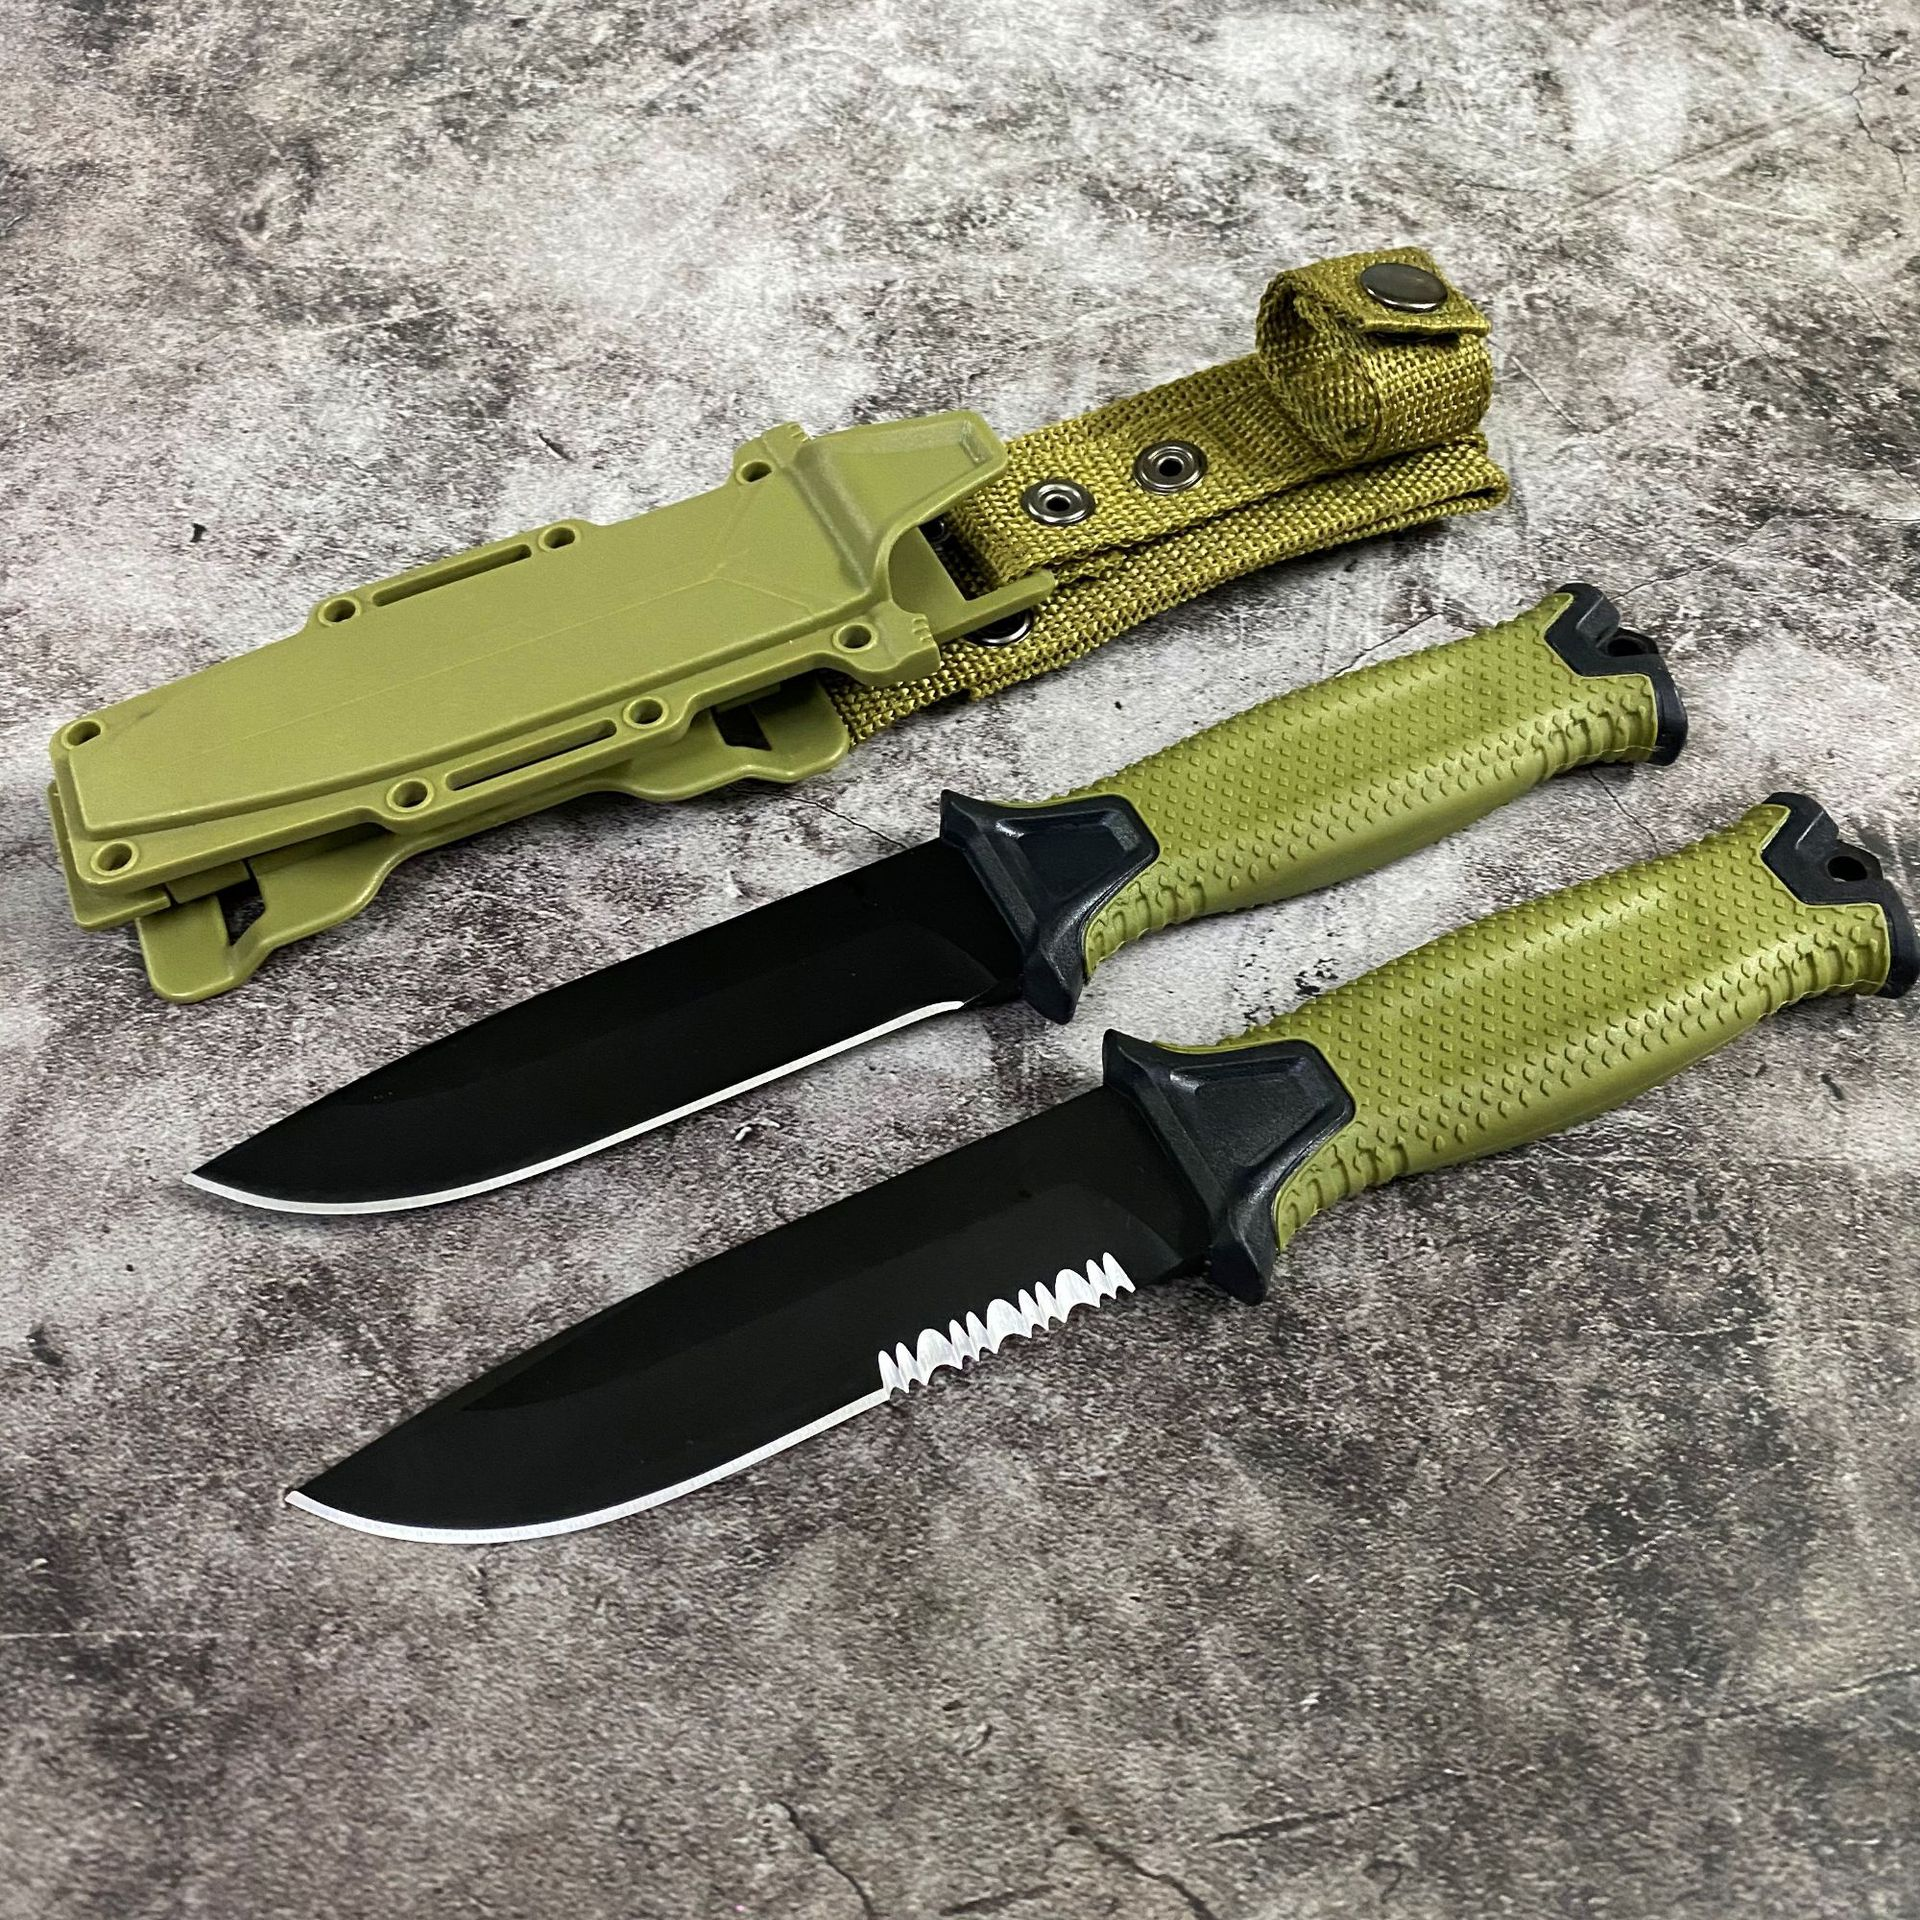 Knife Hunting Blade 2 Knife Tactical Blade Survival LMF Camping EDC Wildness Handle GB Tool Knives Fixed 7CR17MOV ABS Knives